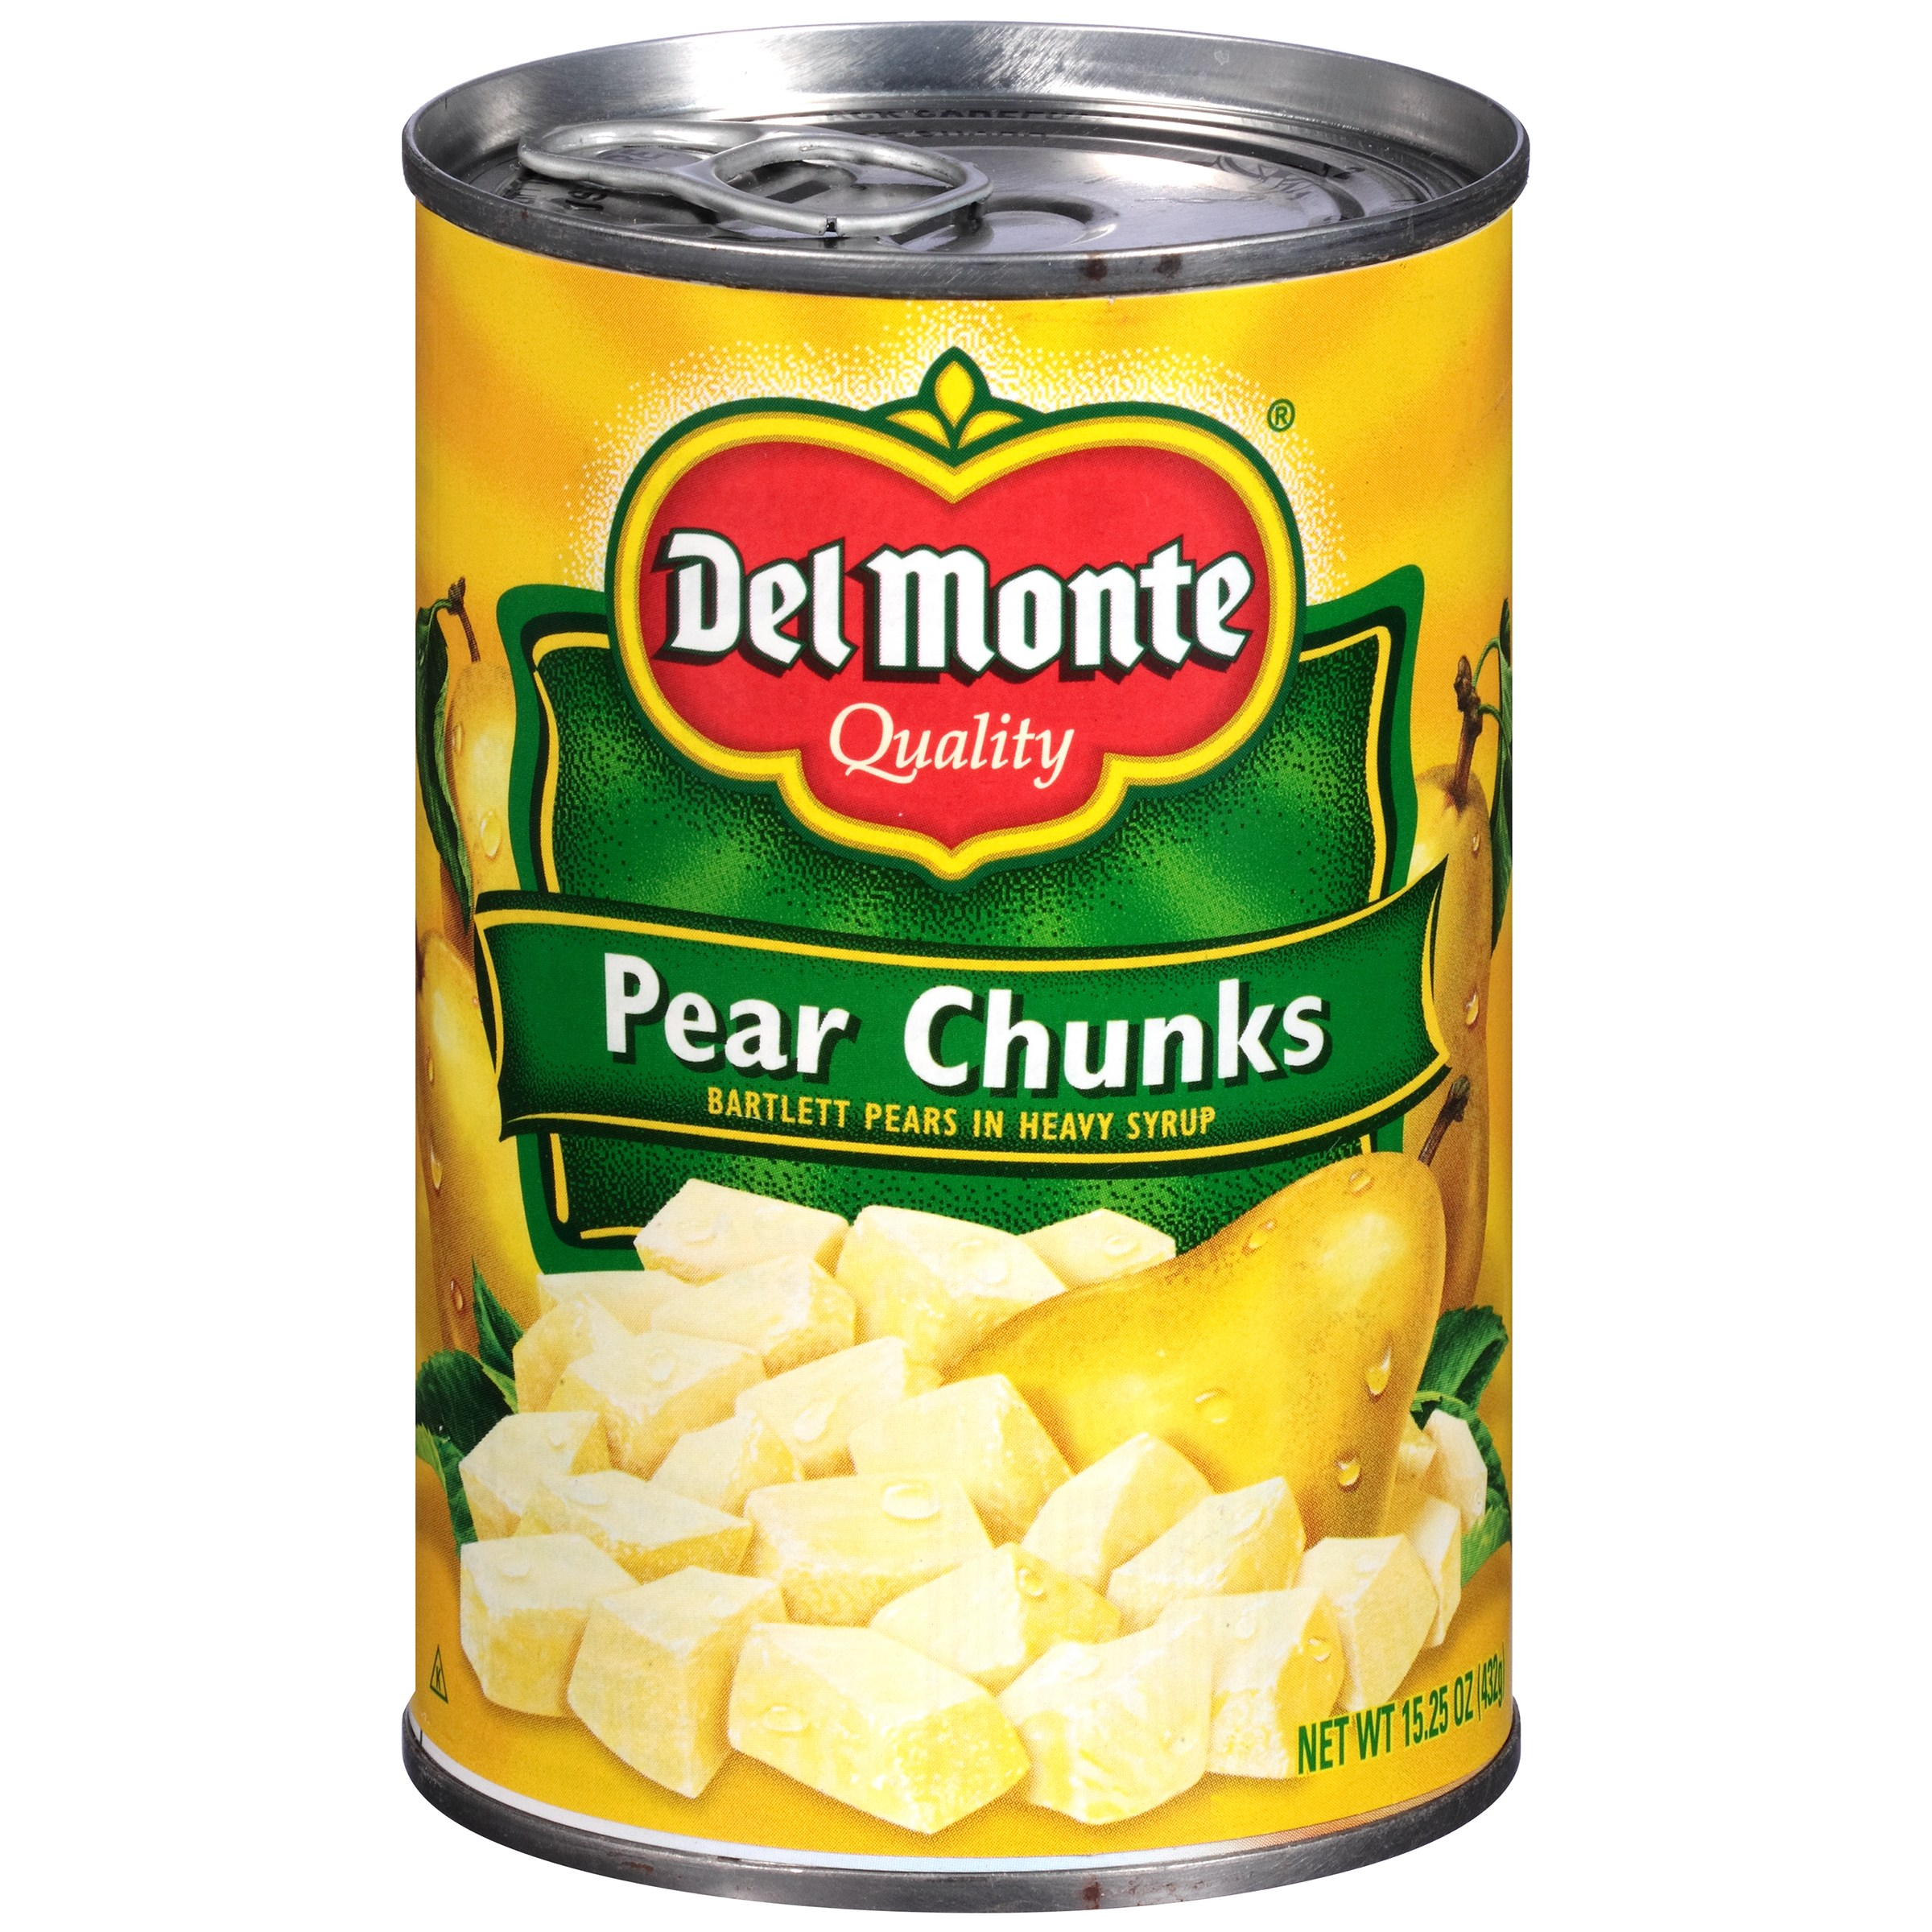 Del Monte Pear Chunks Bartlett Pears in Heavy Syrup 15.25 oz. Can by Del Monte Foods